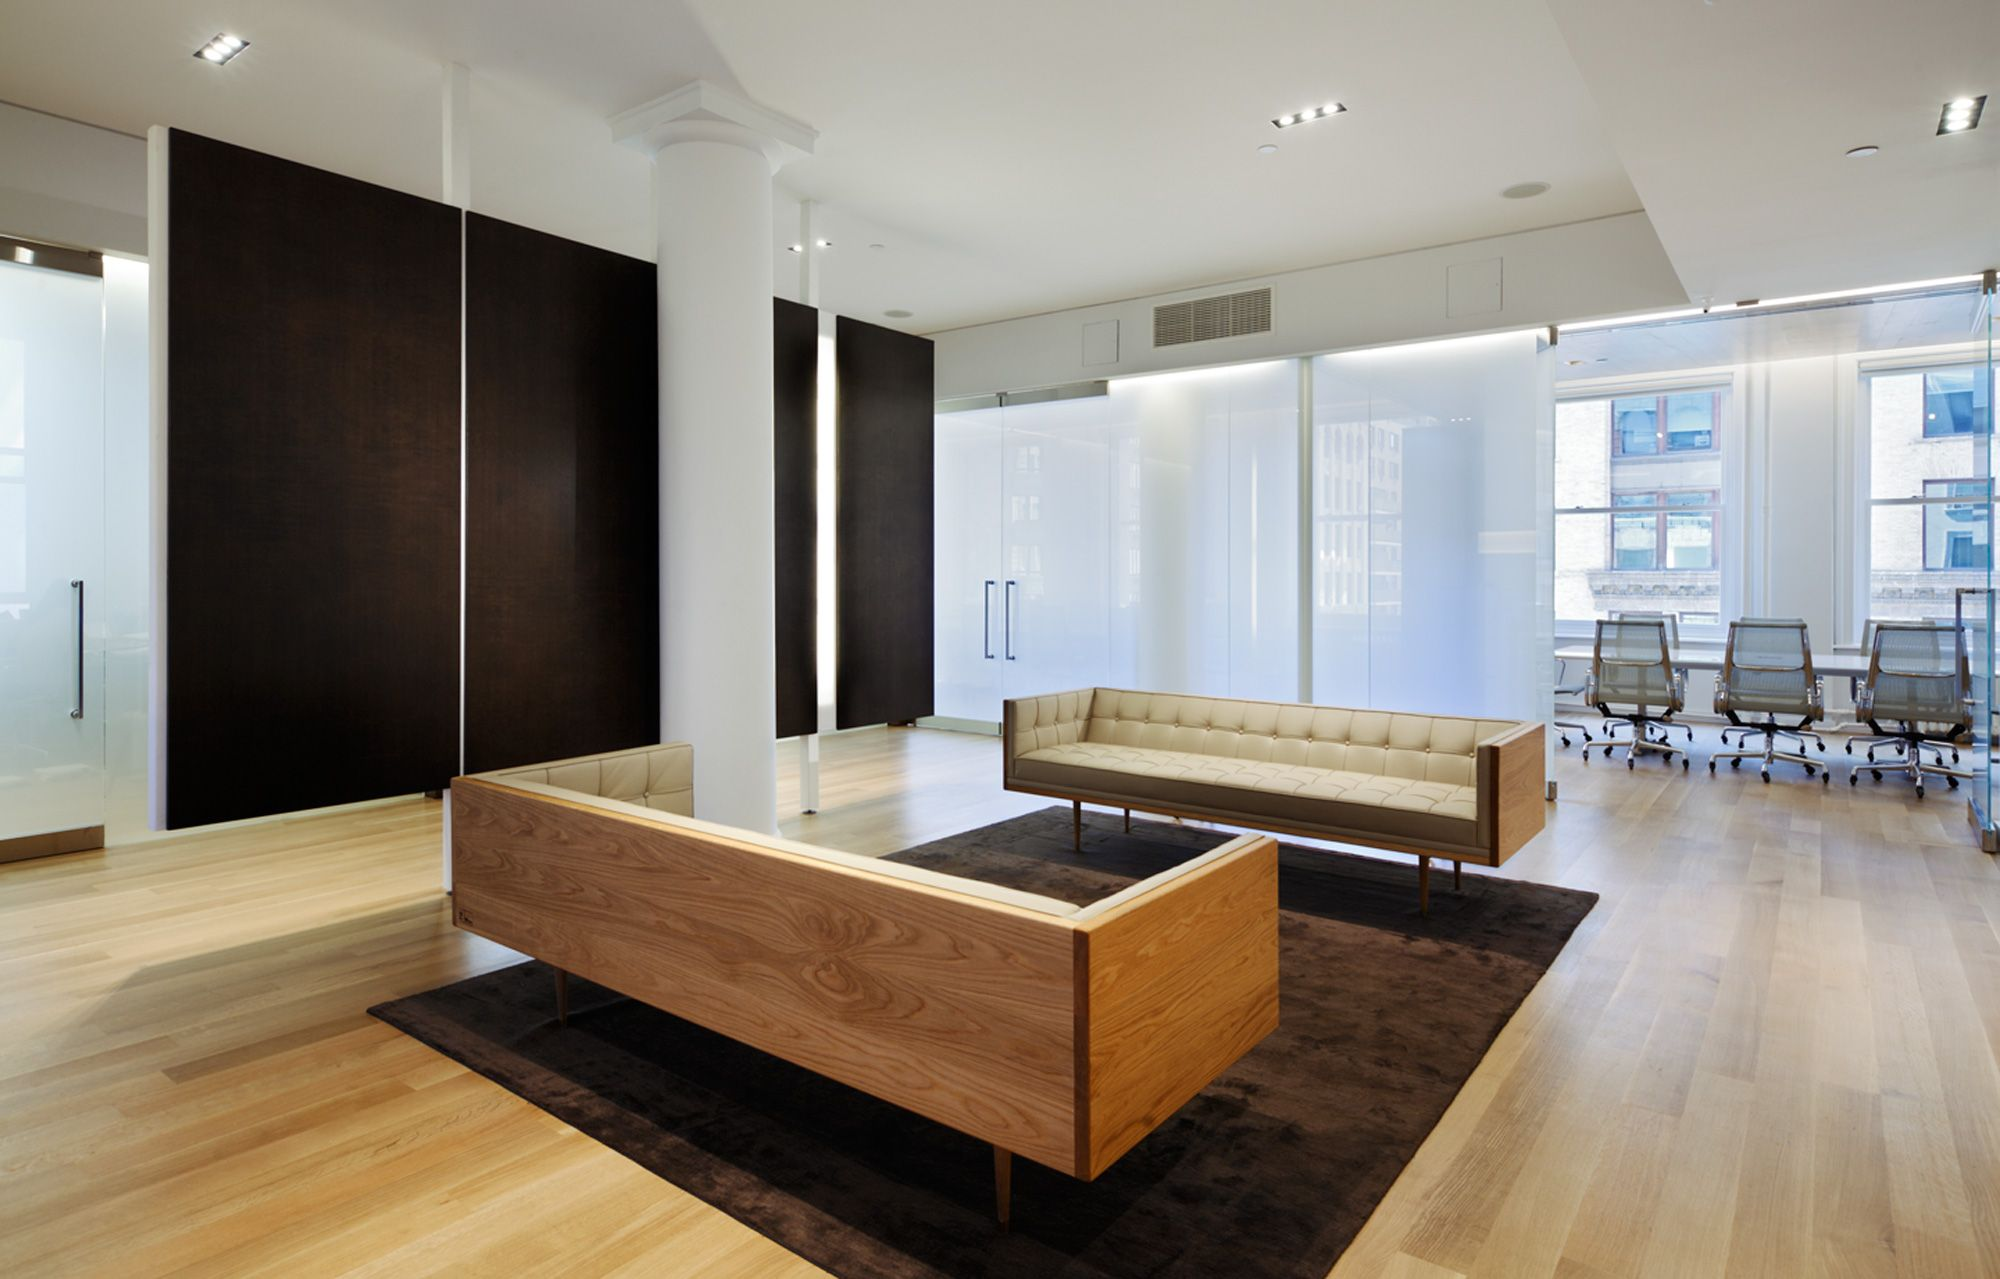 lawyer office design. TWG Law Loft By Studio Tractor Architecture Lawyer Office Design